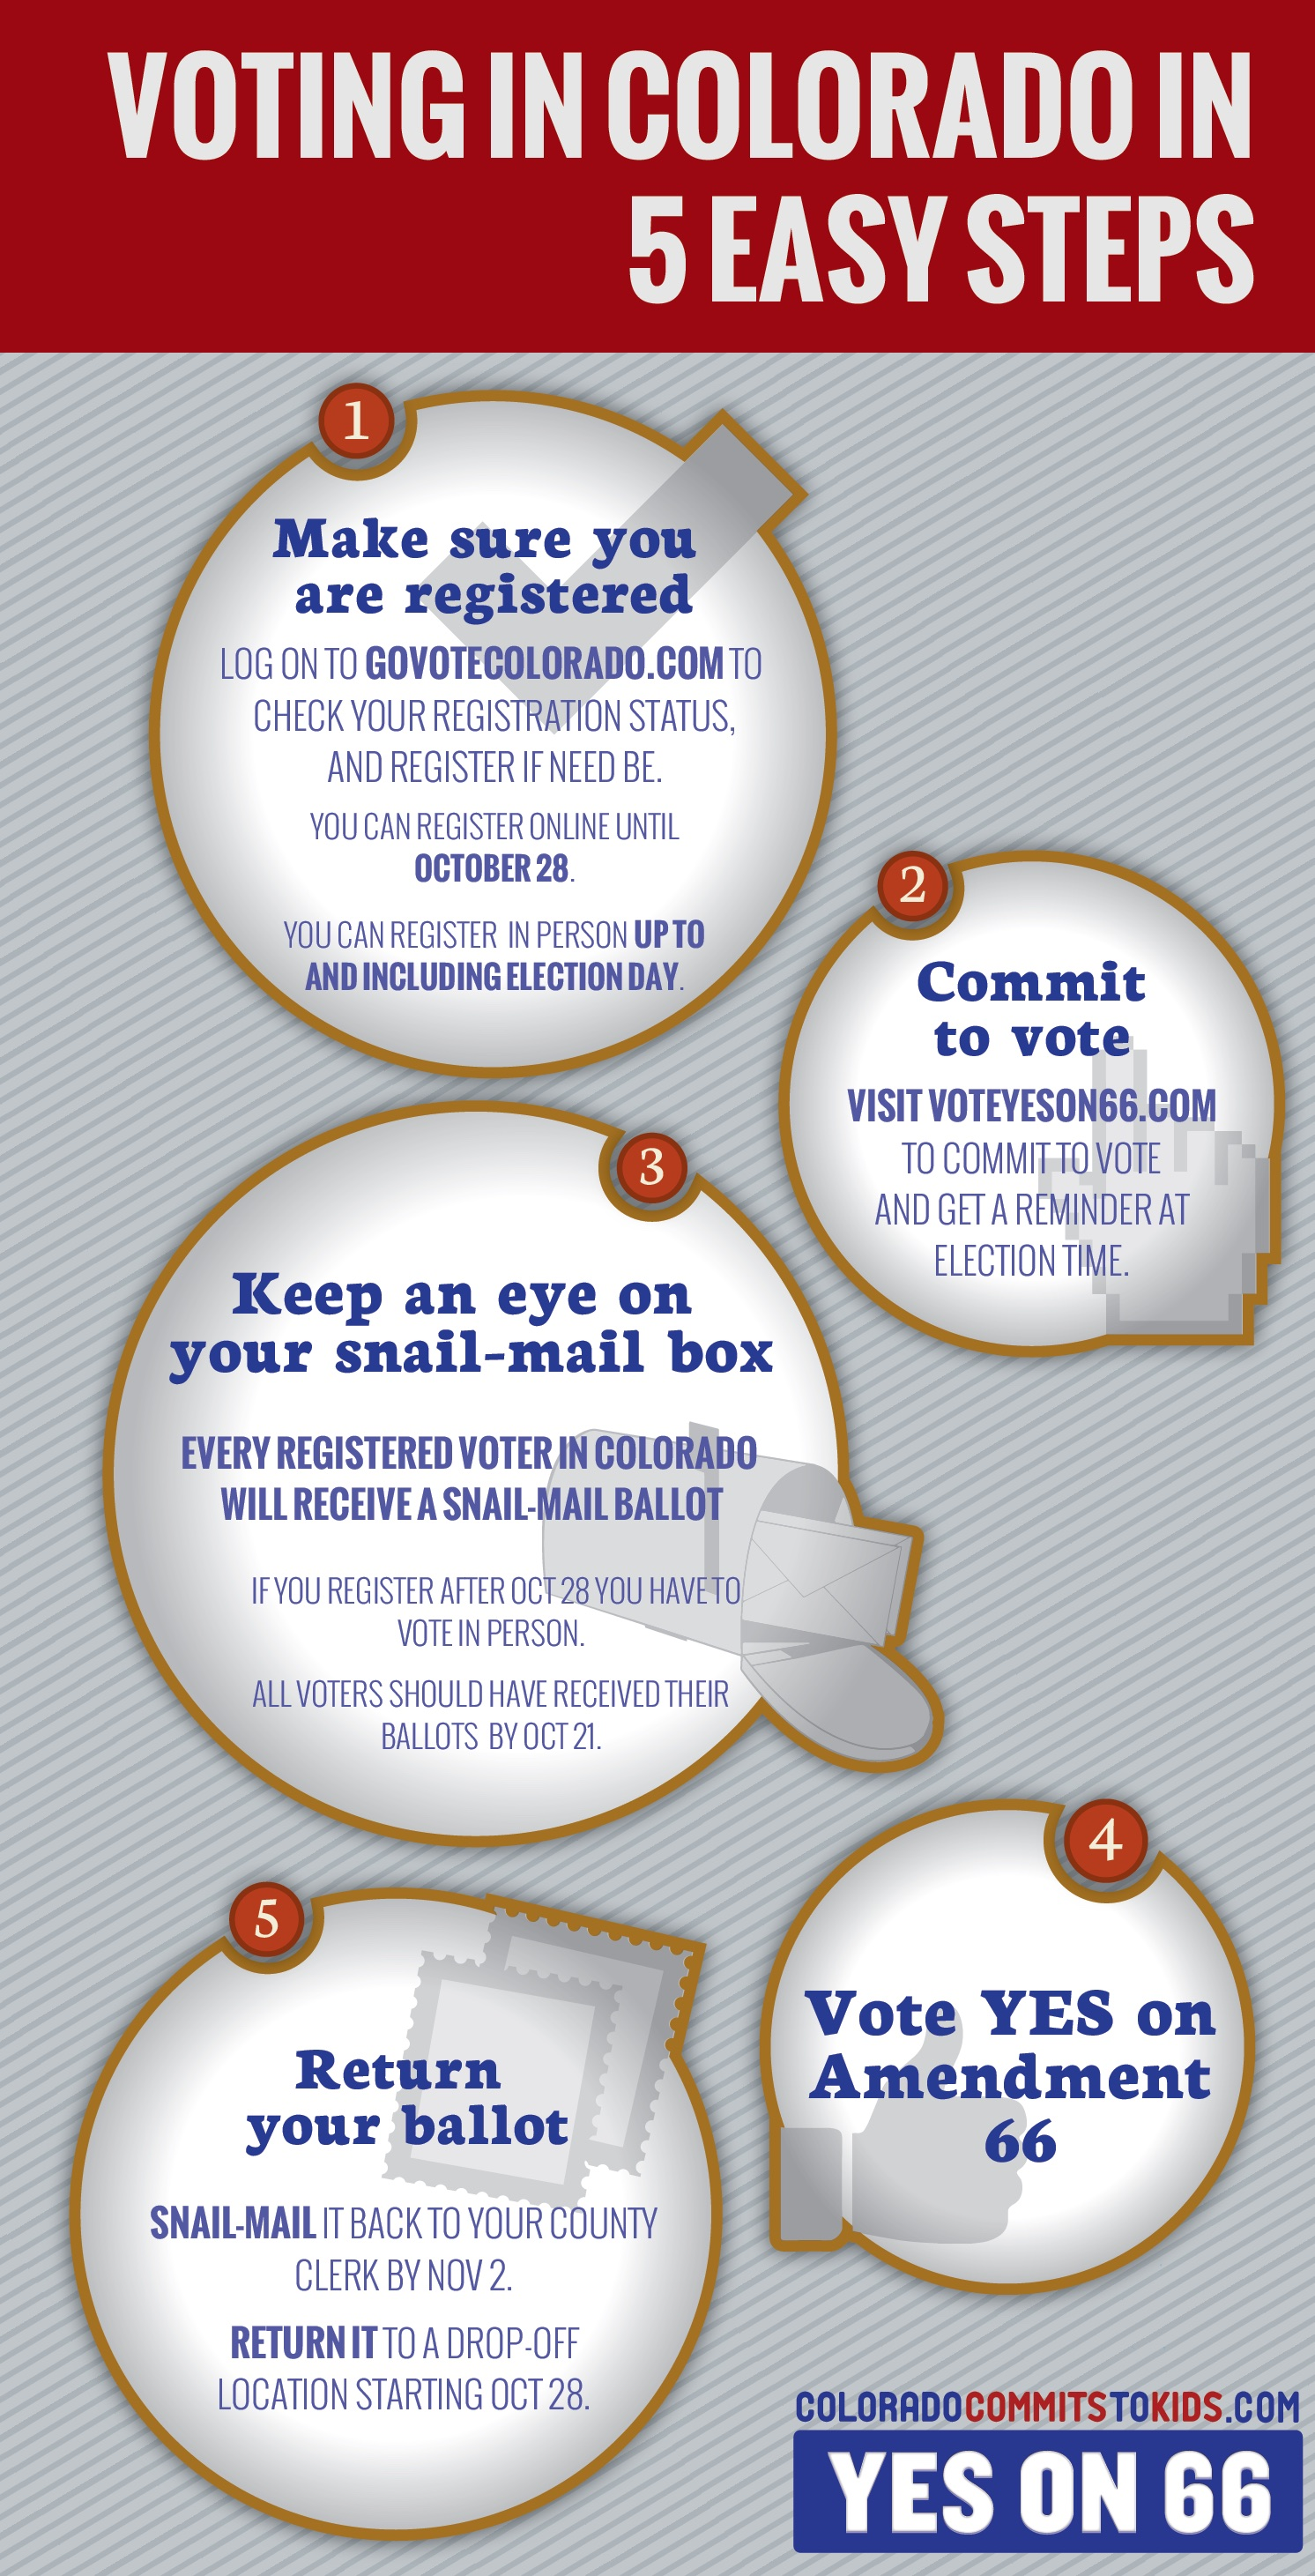 """Amendment 66 """"Voting in Colorado in 5 Easy Steps"""" infographic"""